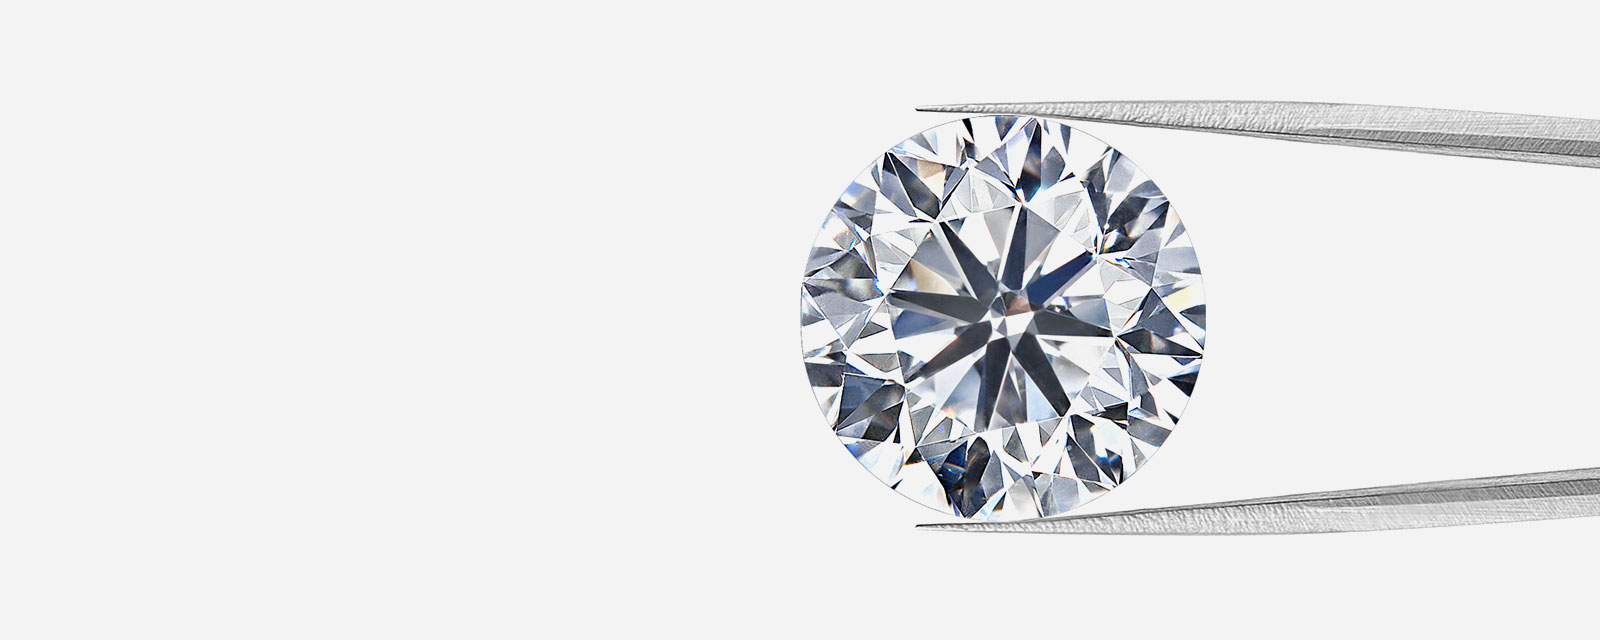 Find YourPerfect Diamond Browse our extensive selection of naturaland lab-grown diamonds. Fox Fine Jewelry Ventura, CA